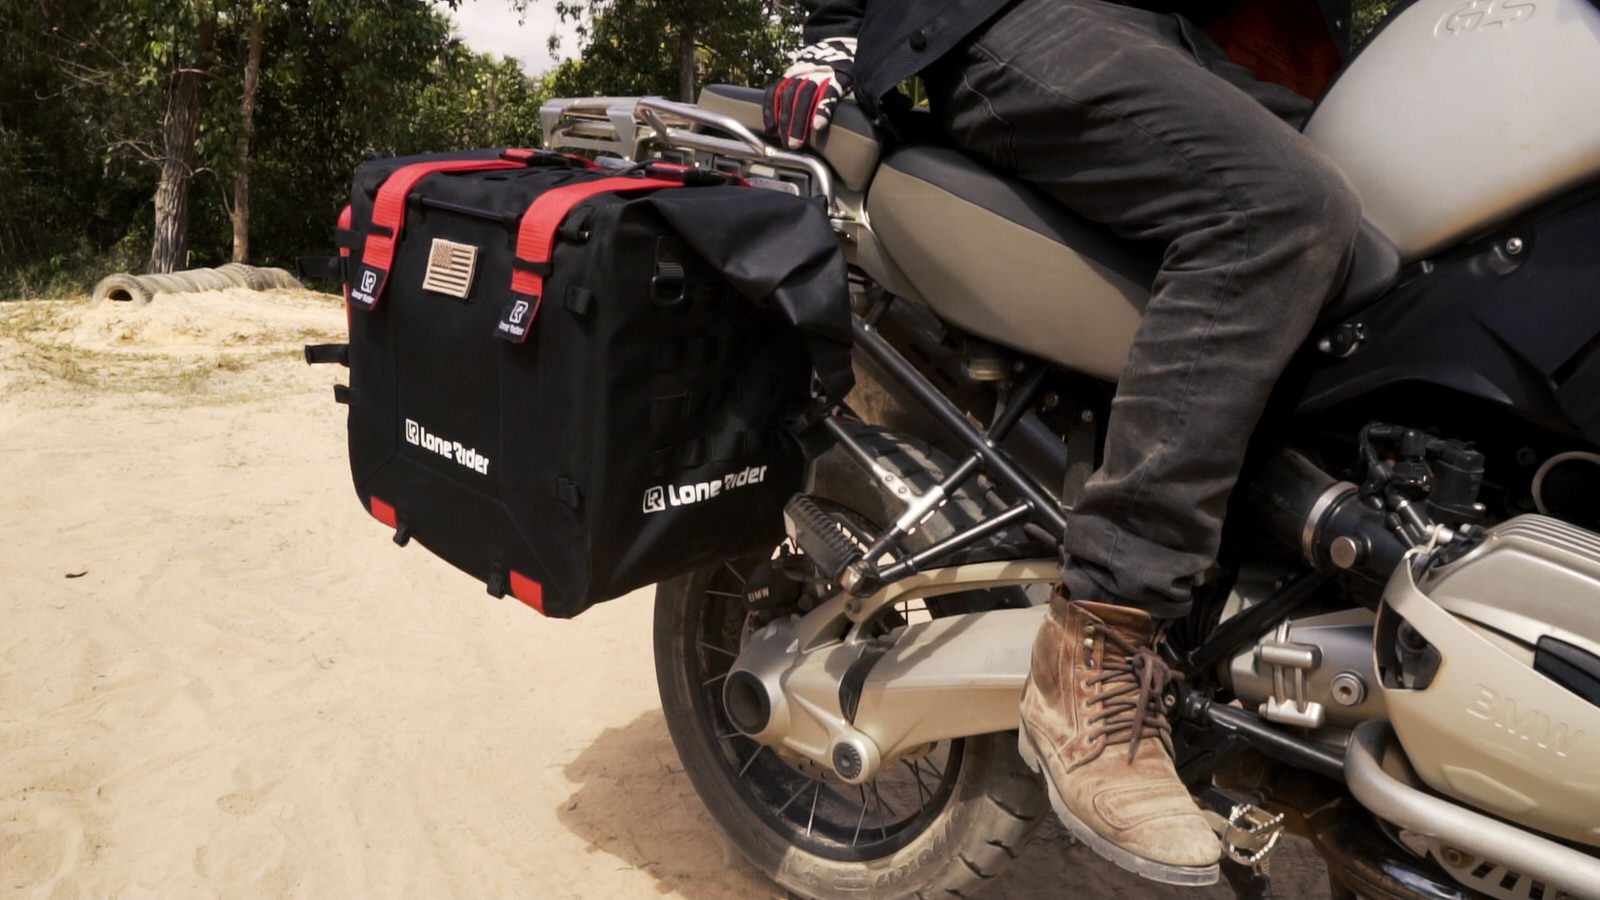 Lone Rider racks for MotoBags - semi-rigid motorcycle bags